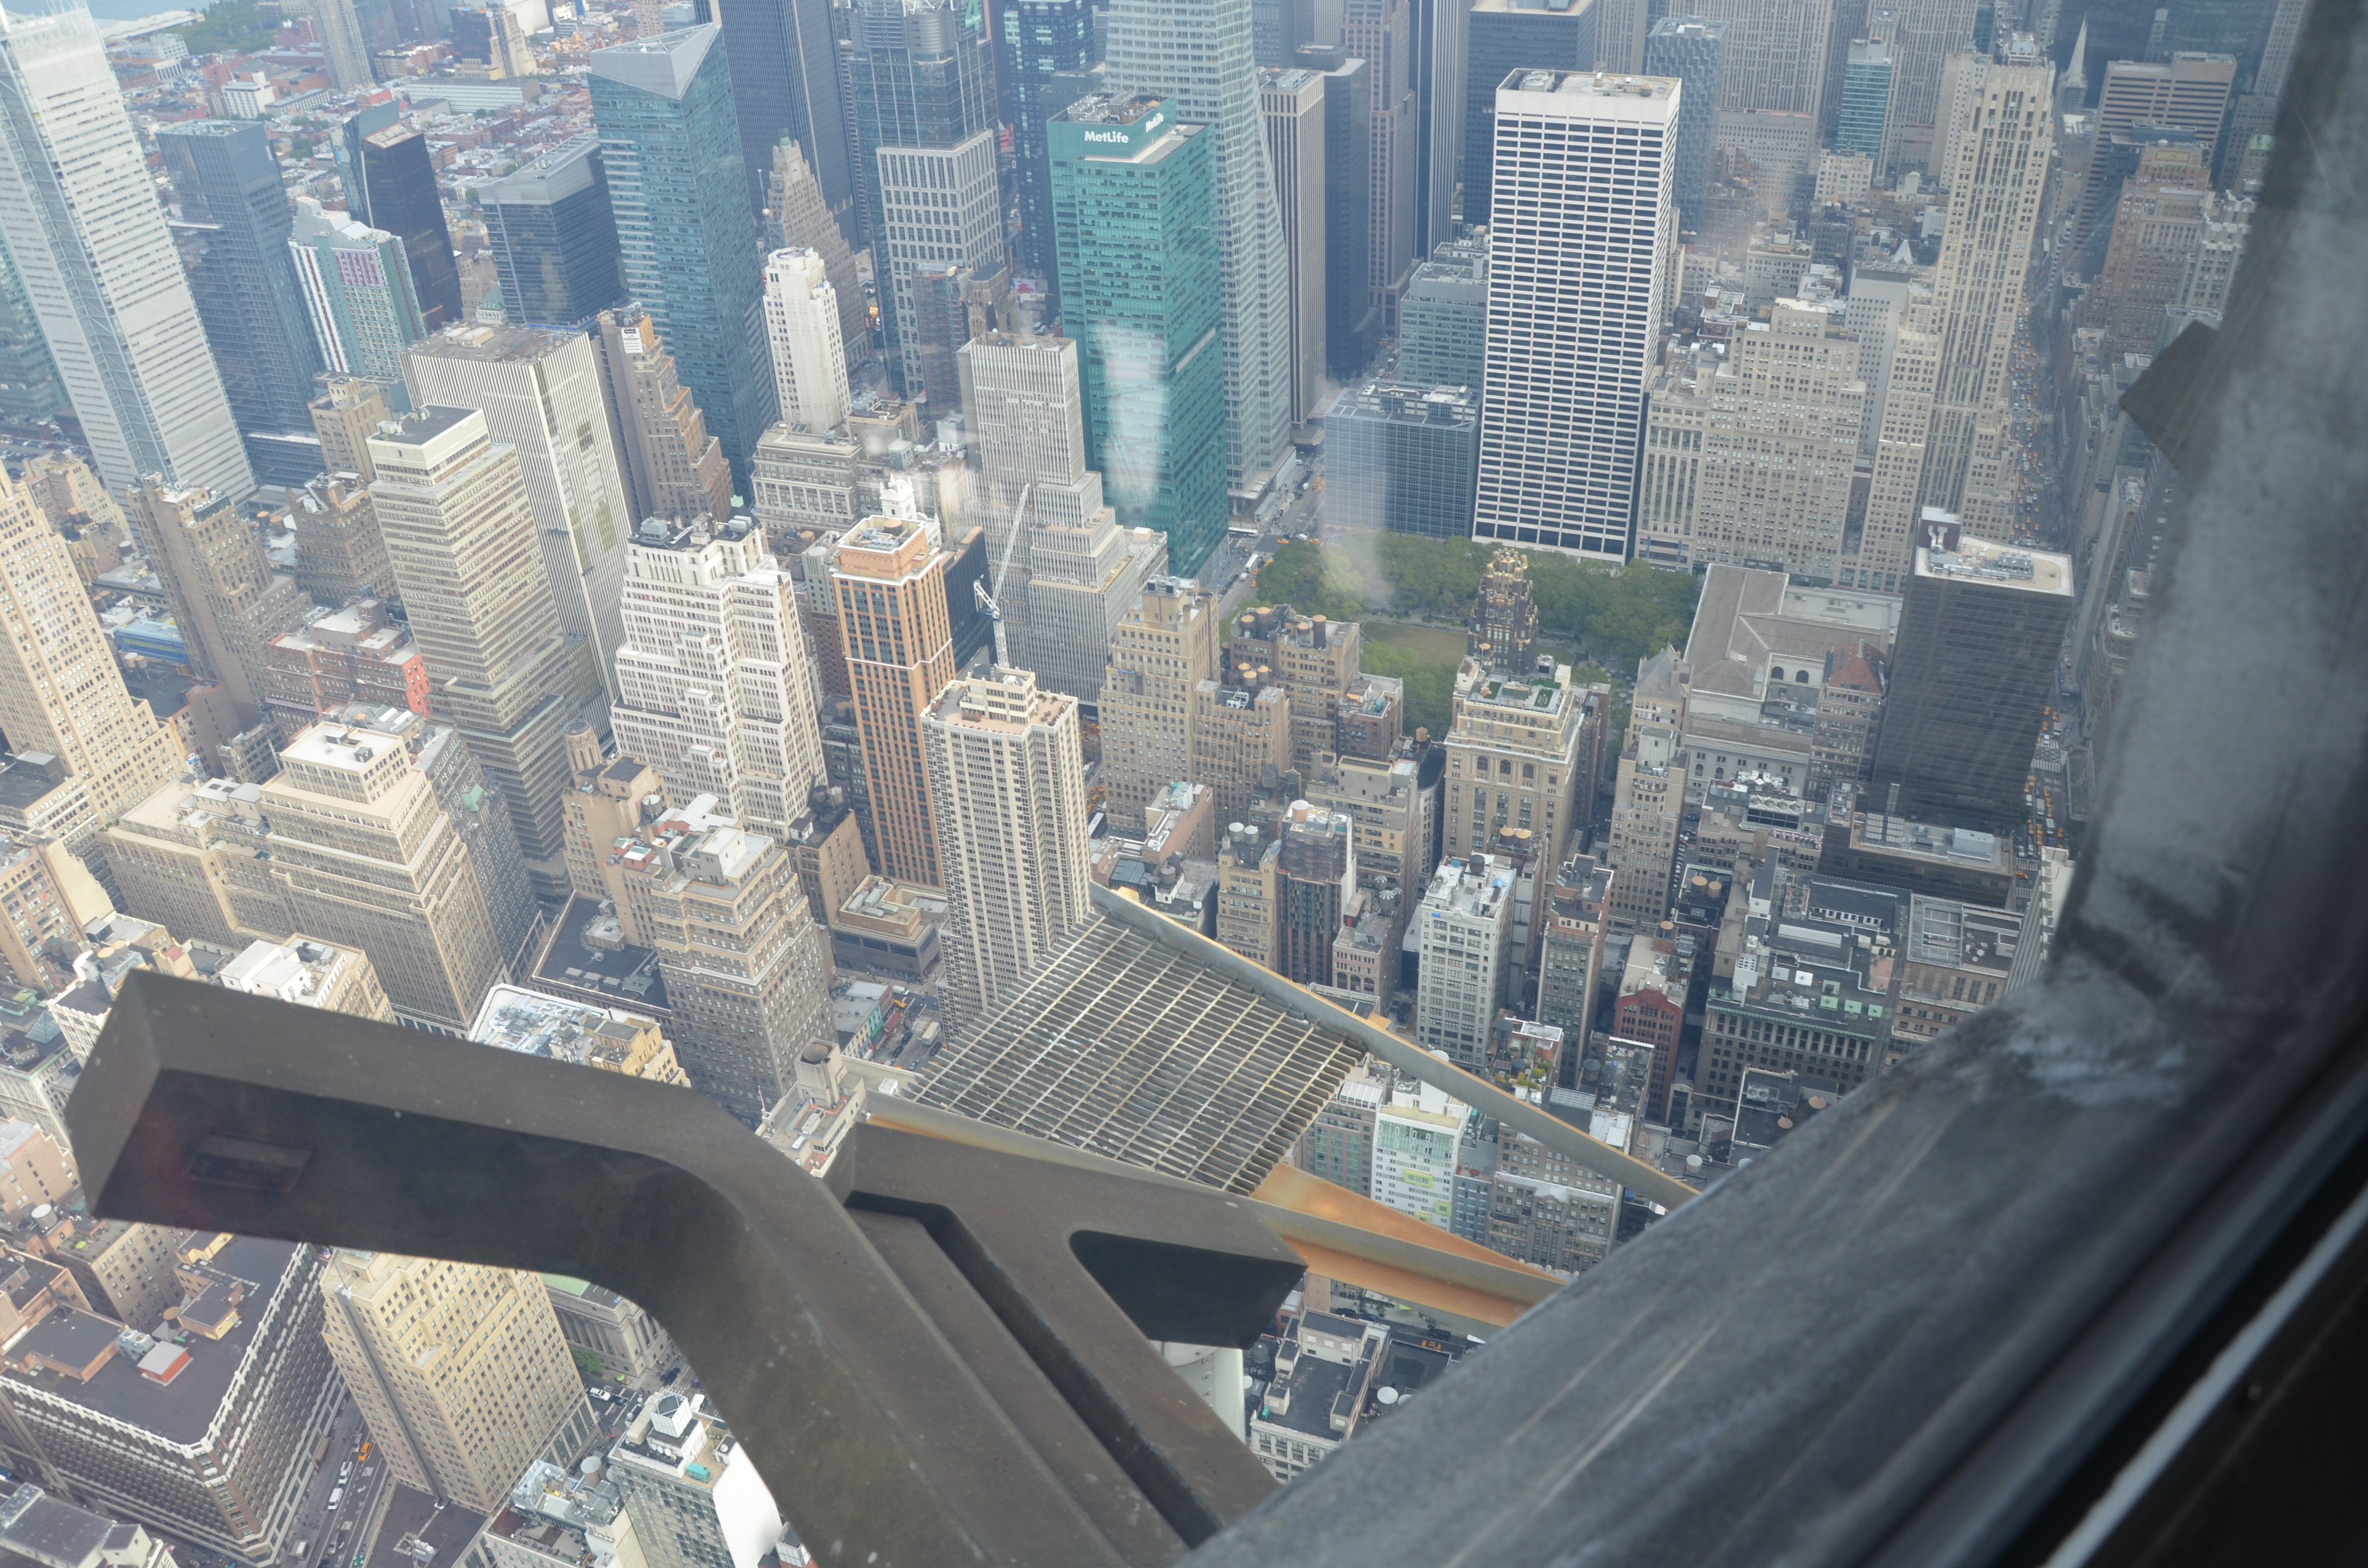 Land of the free home of the brave the american dream for 102nd floor of the empire state building